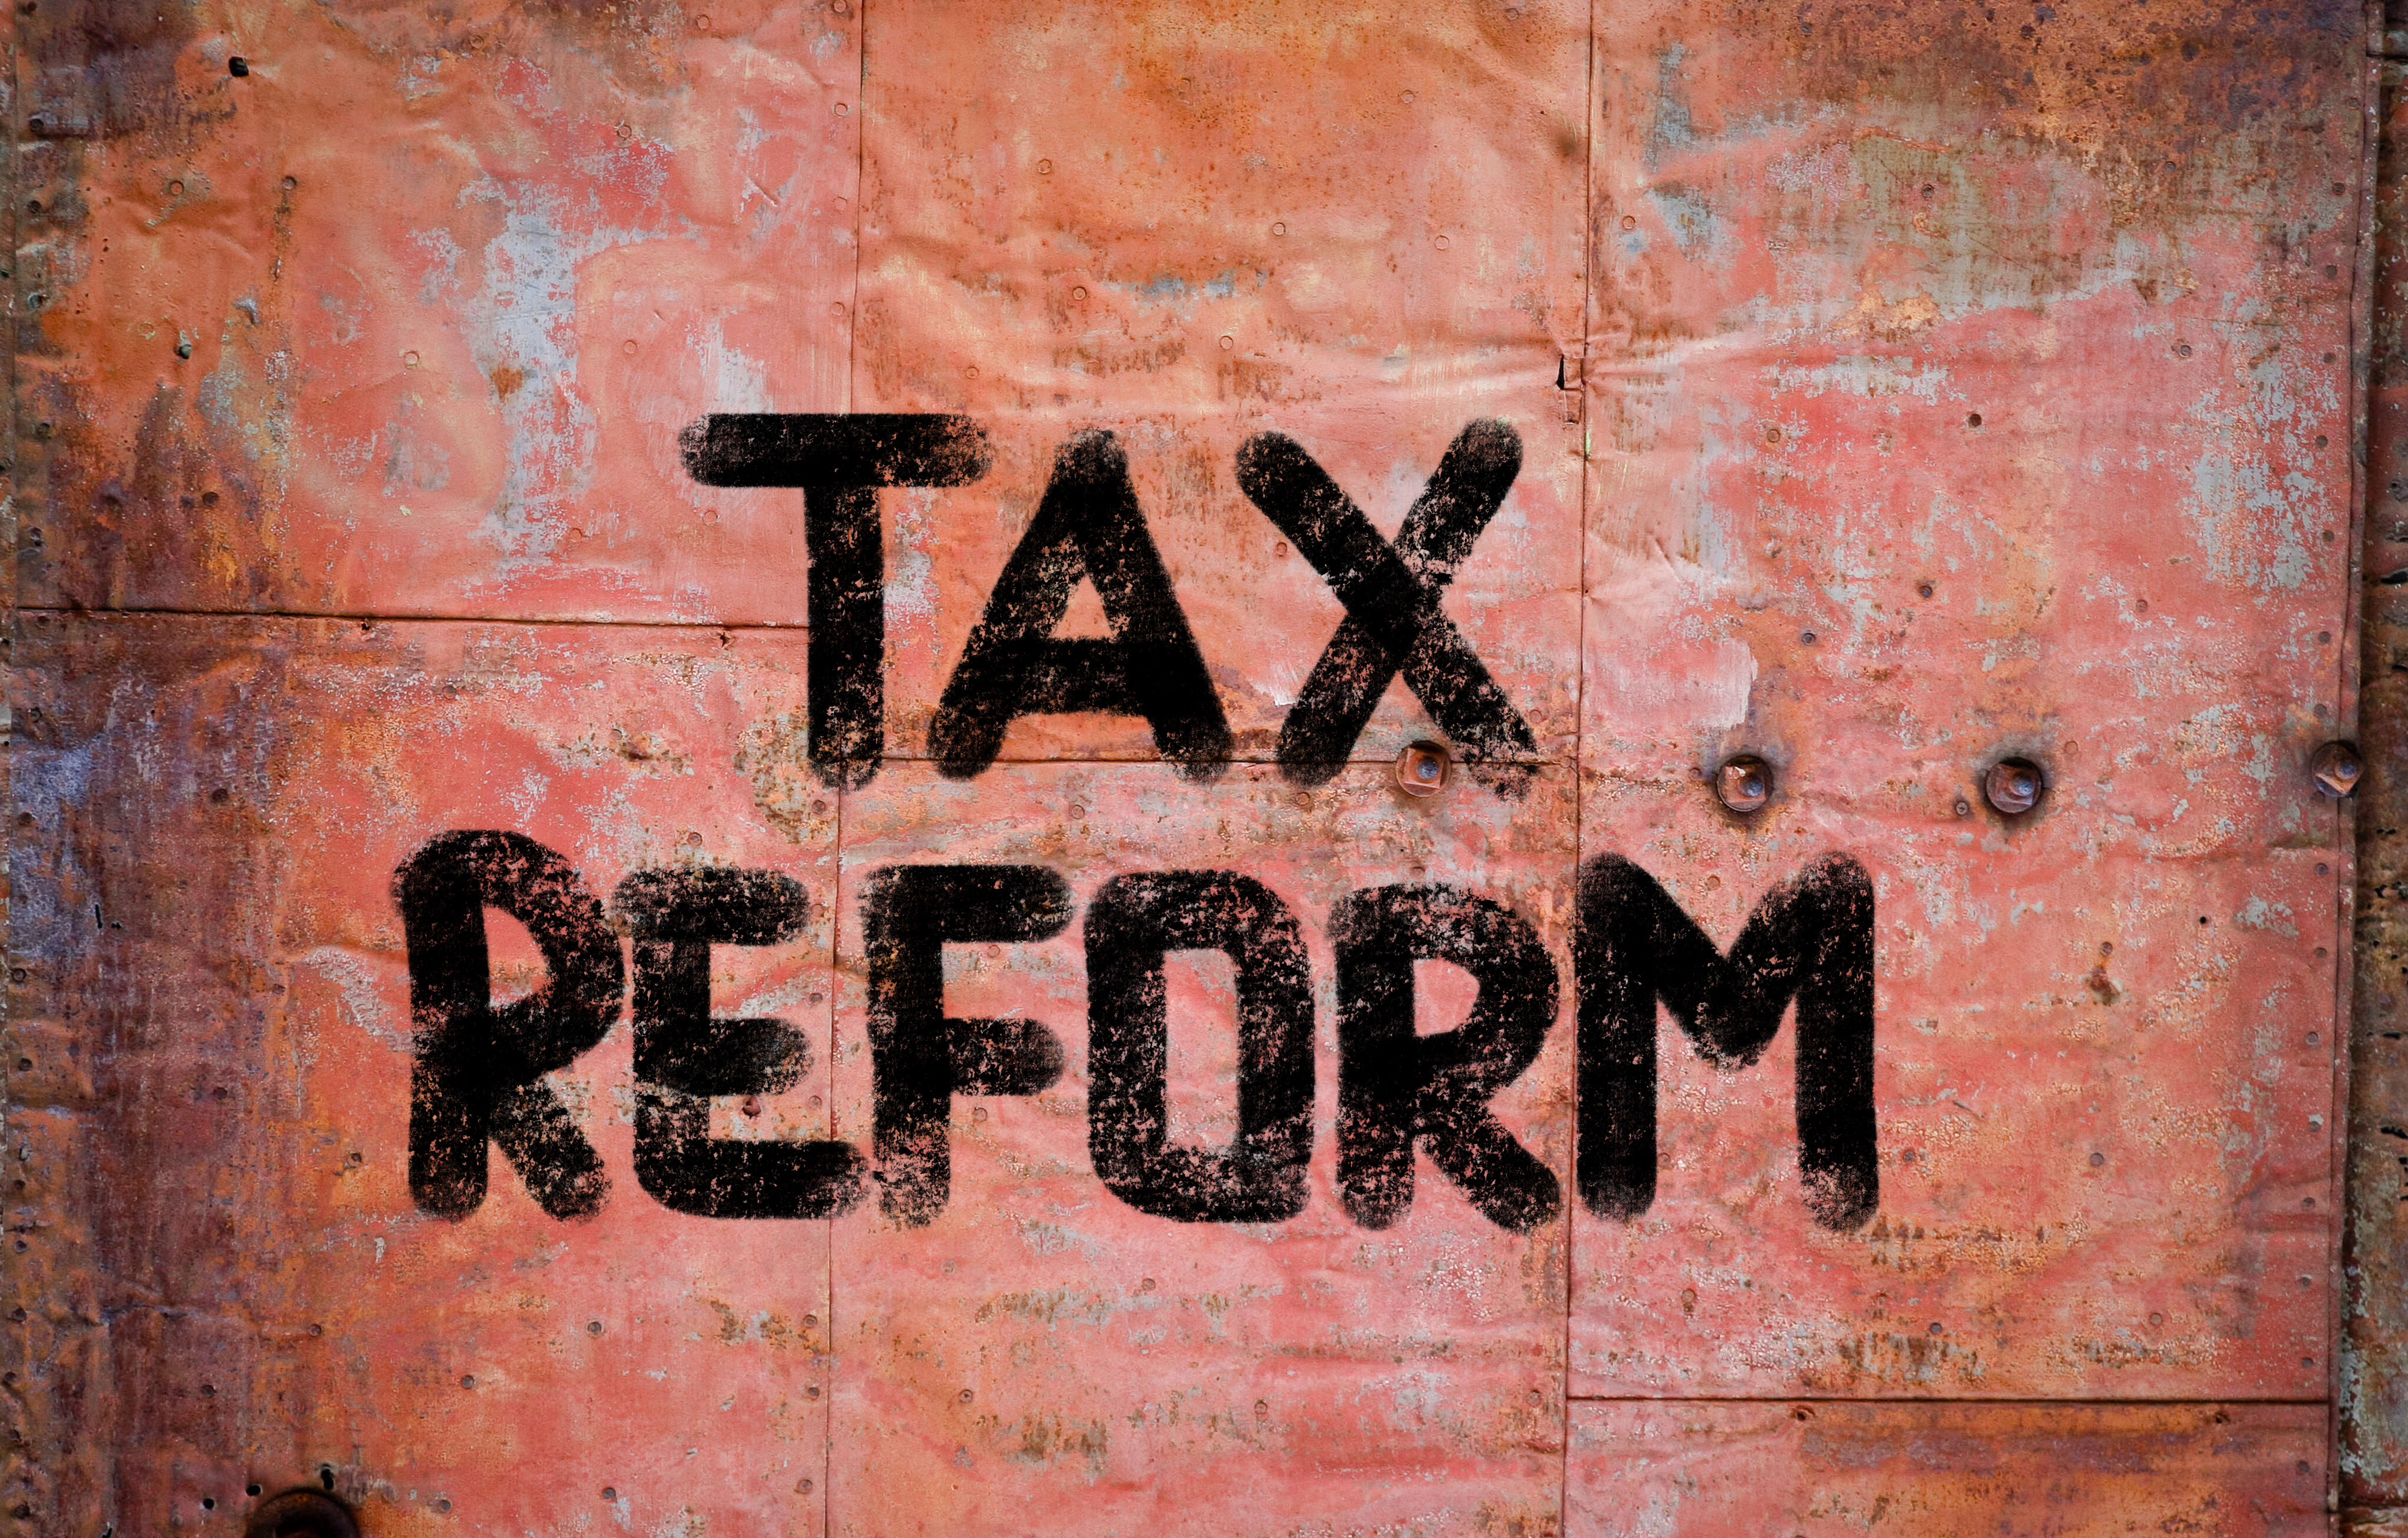 Where Are We With Tax Reform? (Business/Entrepreneur) by Nadine Riley